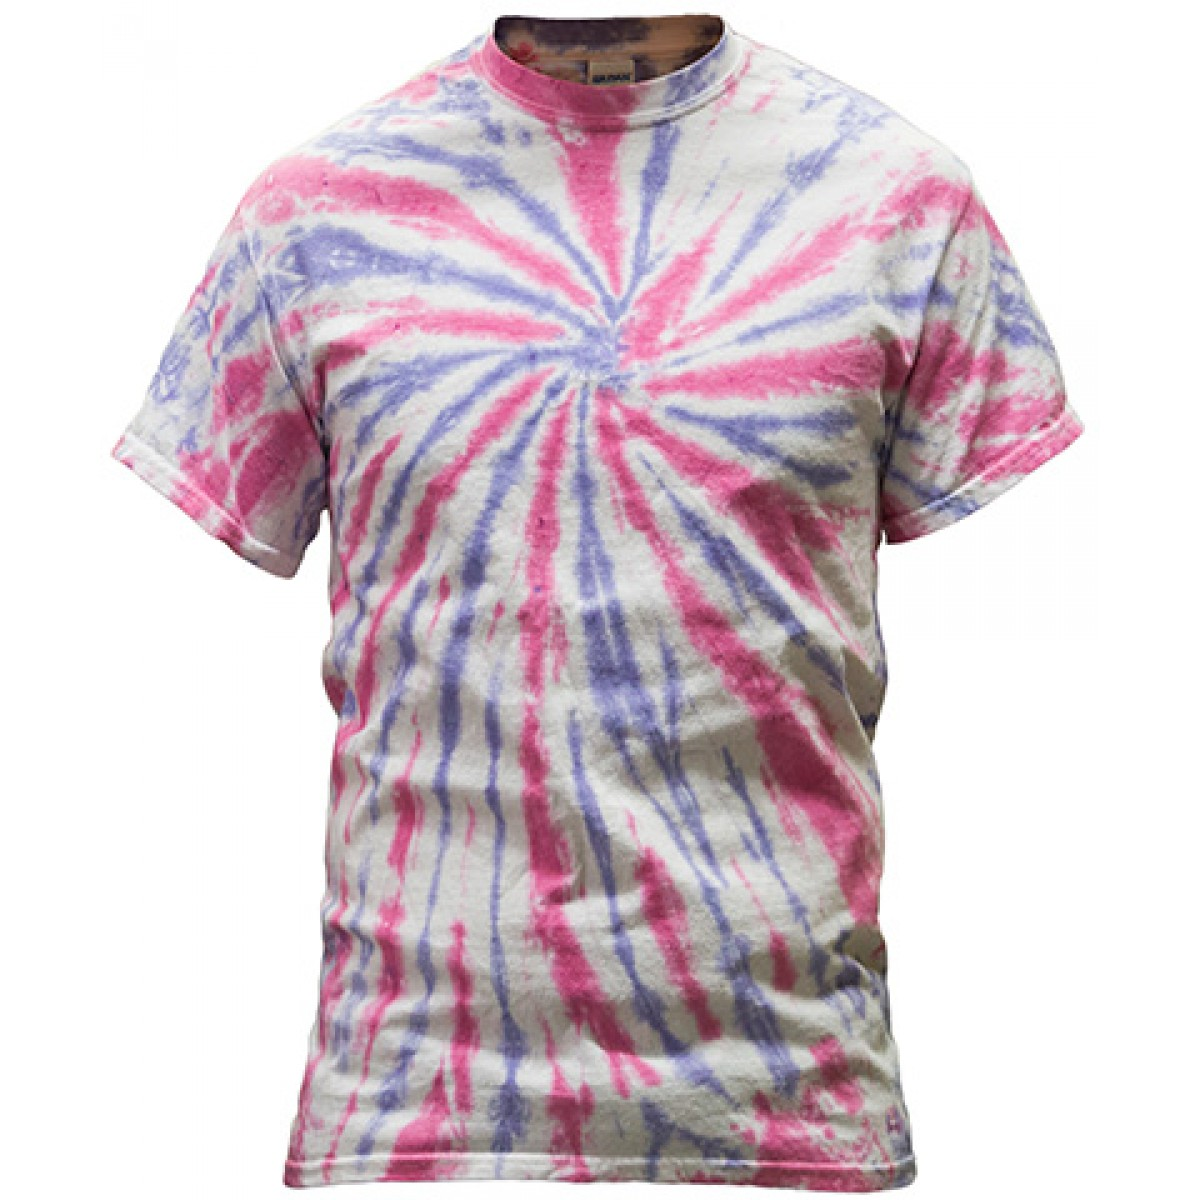 Multi-Color Tie-Dye Tee -Pink/Purple-S